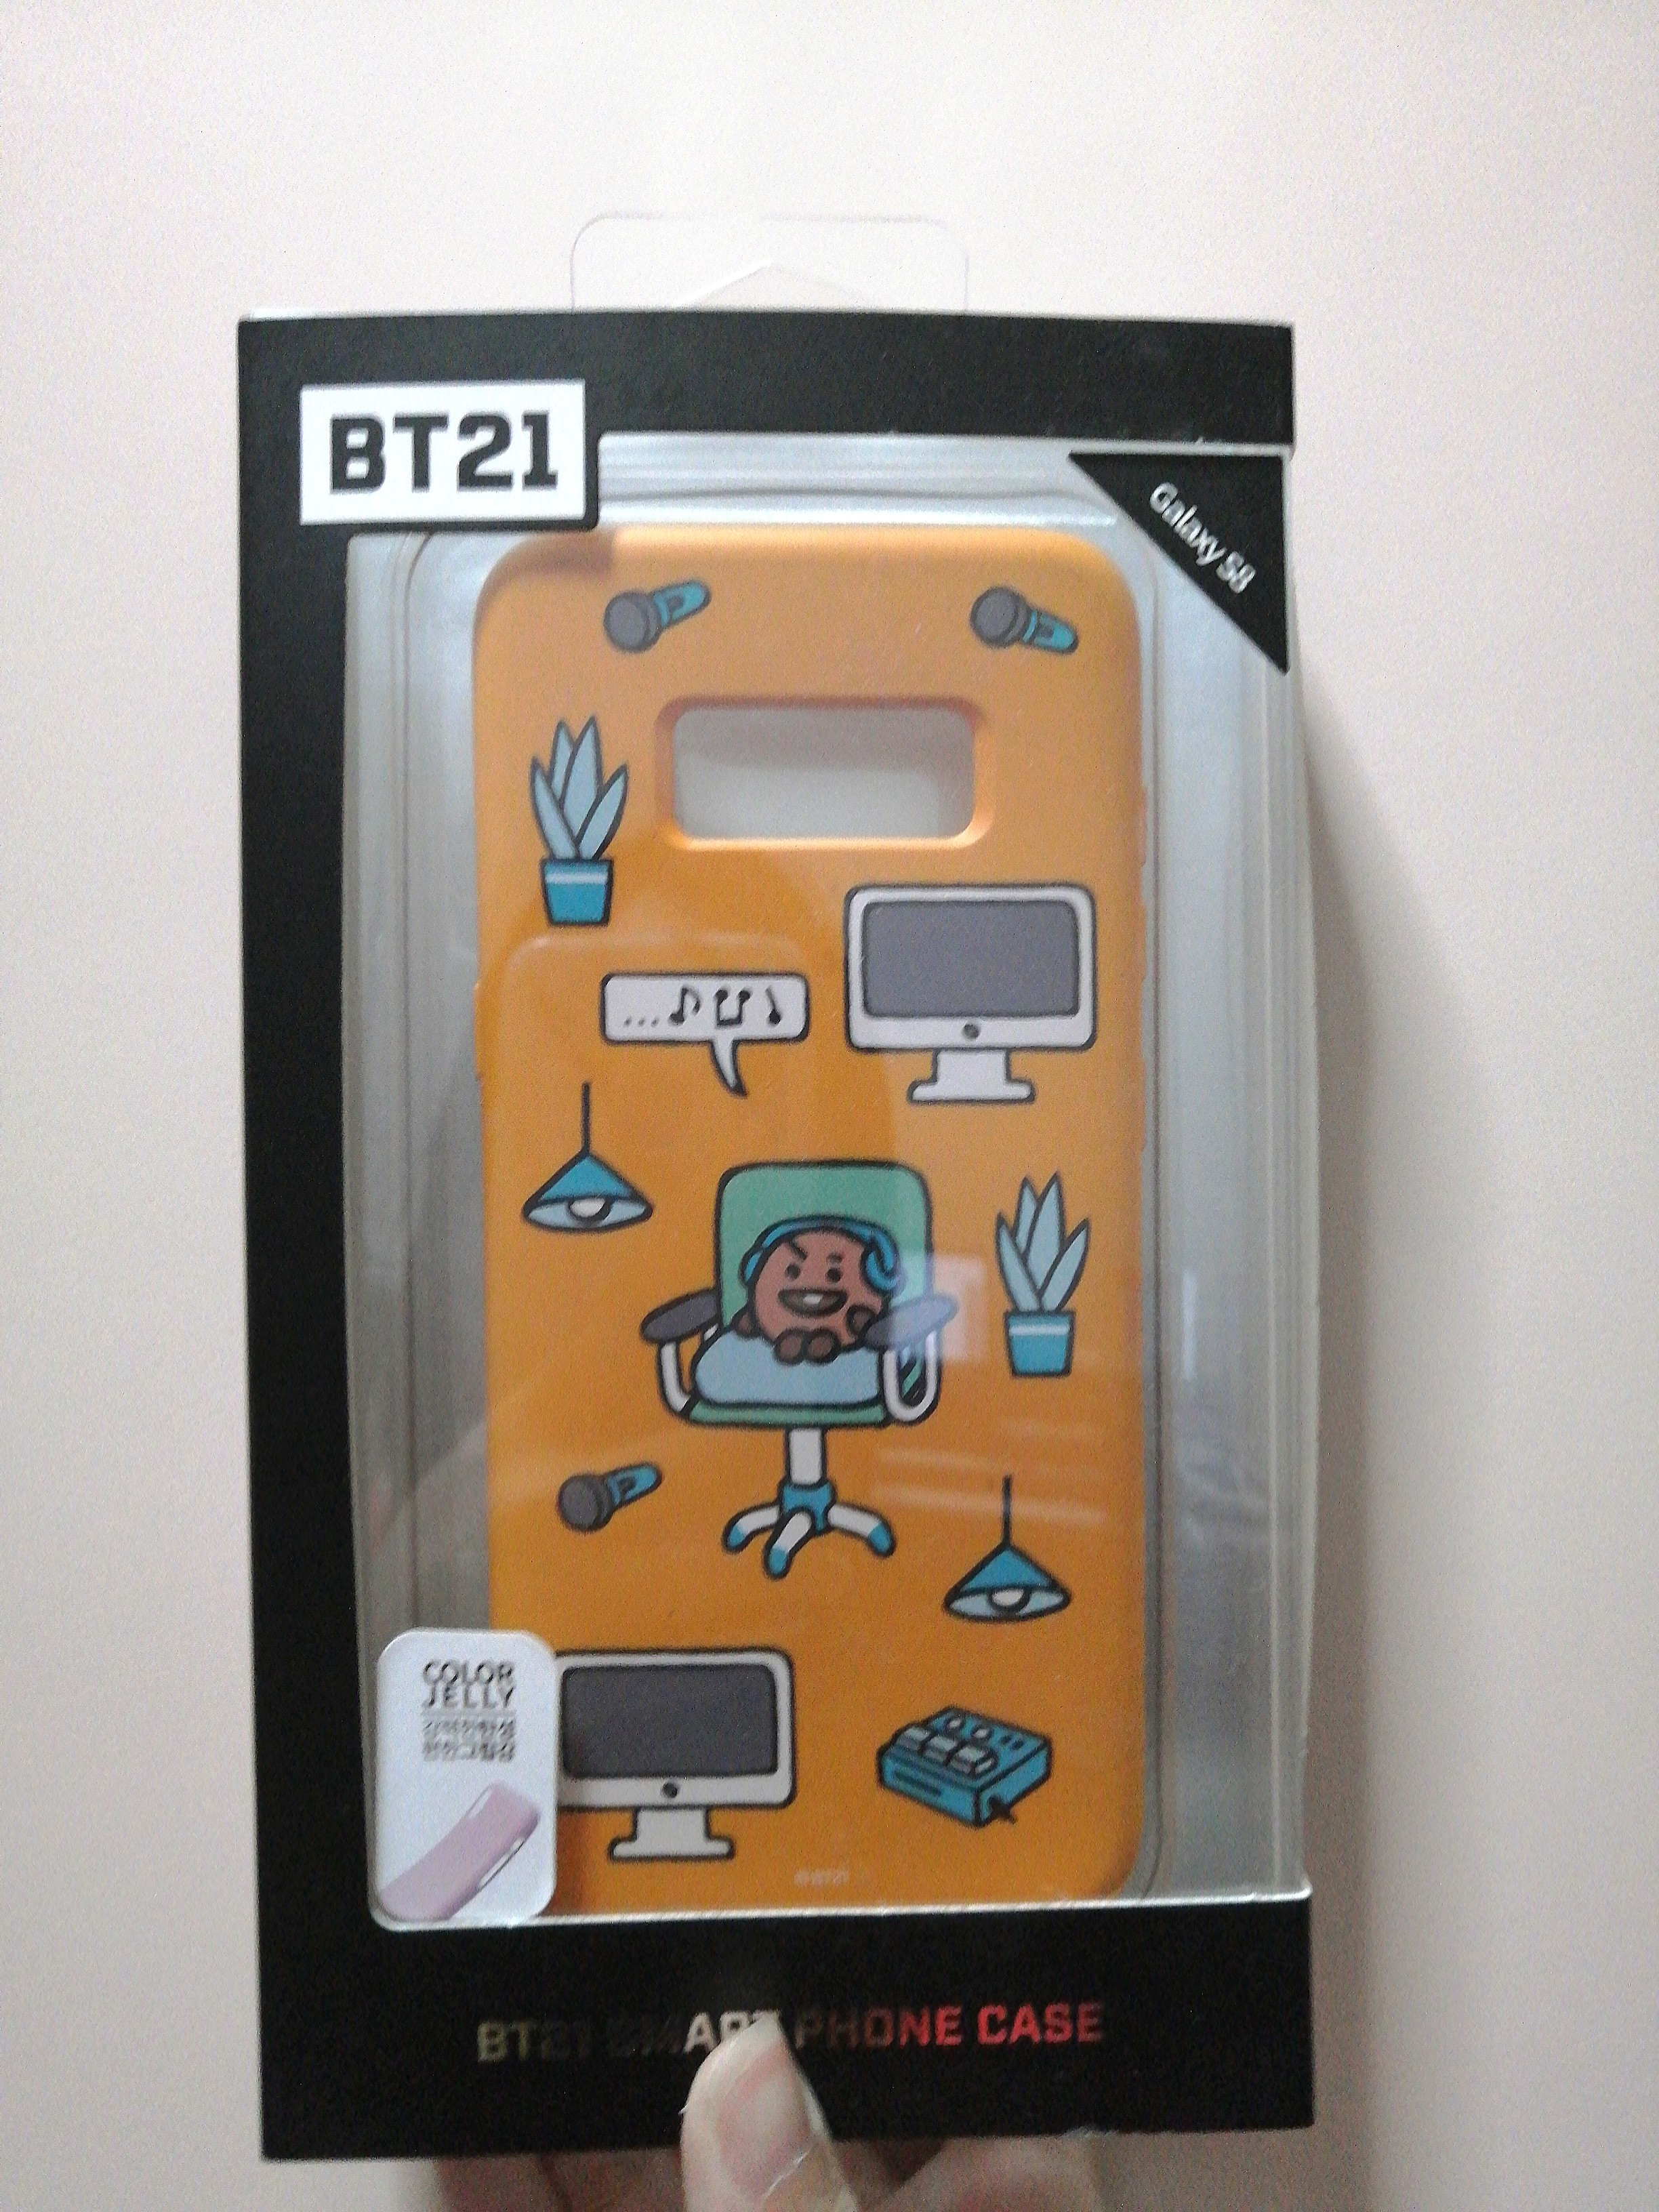 WTS BT21 Shooky S8 phonecase